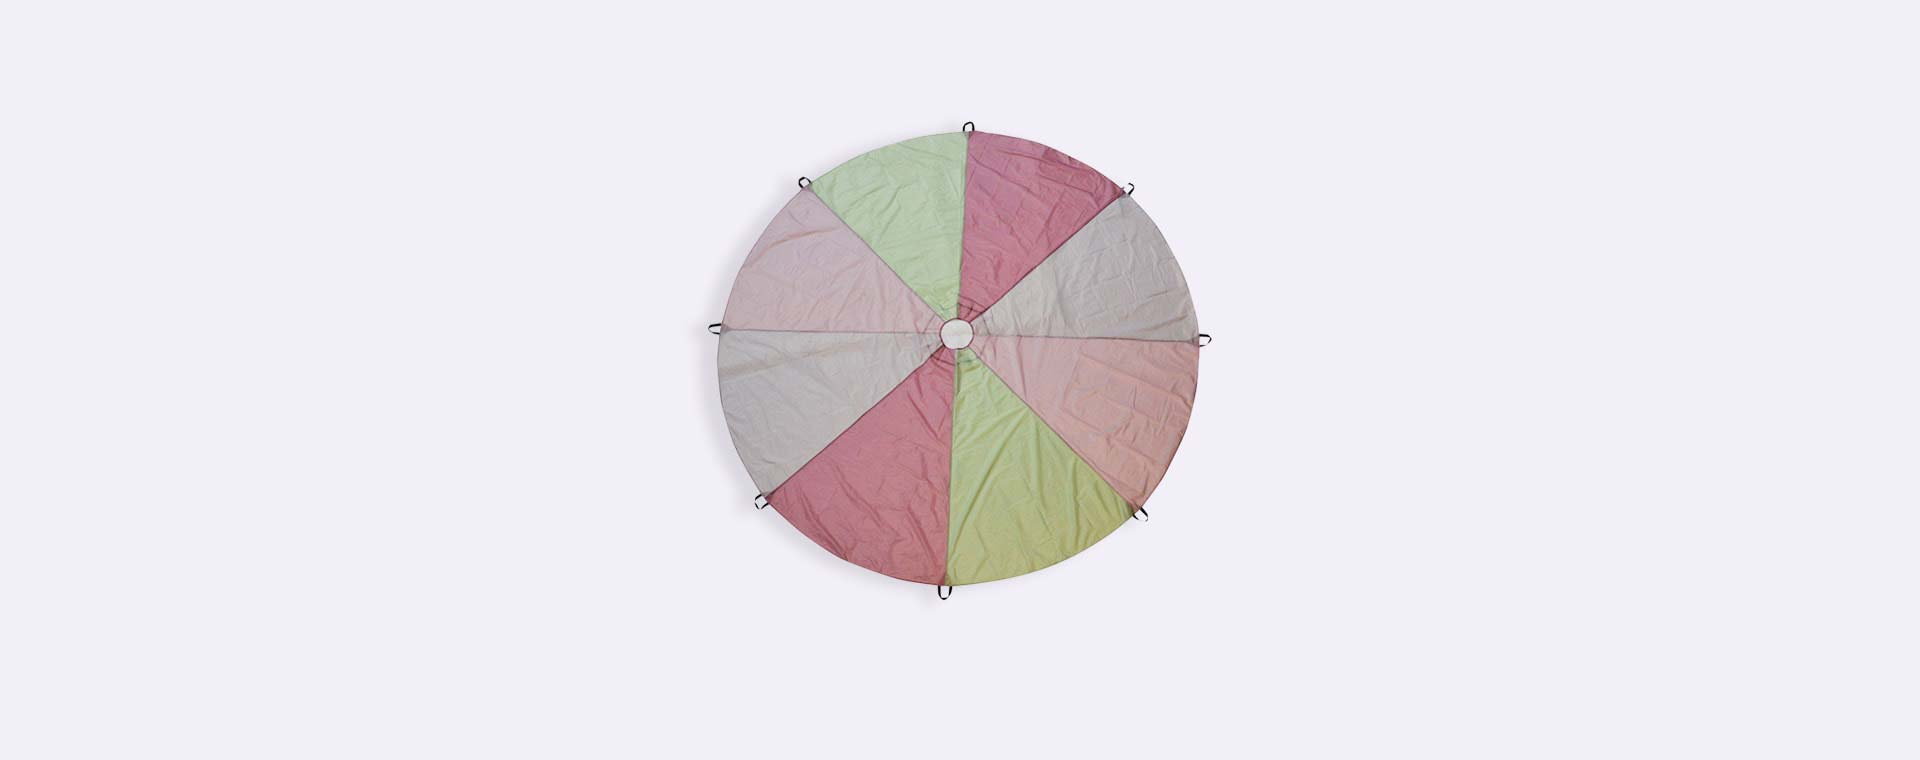 Multi Traditional Garden Games Giant Play Parachute